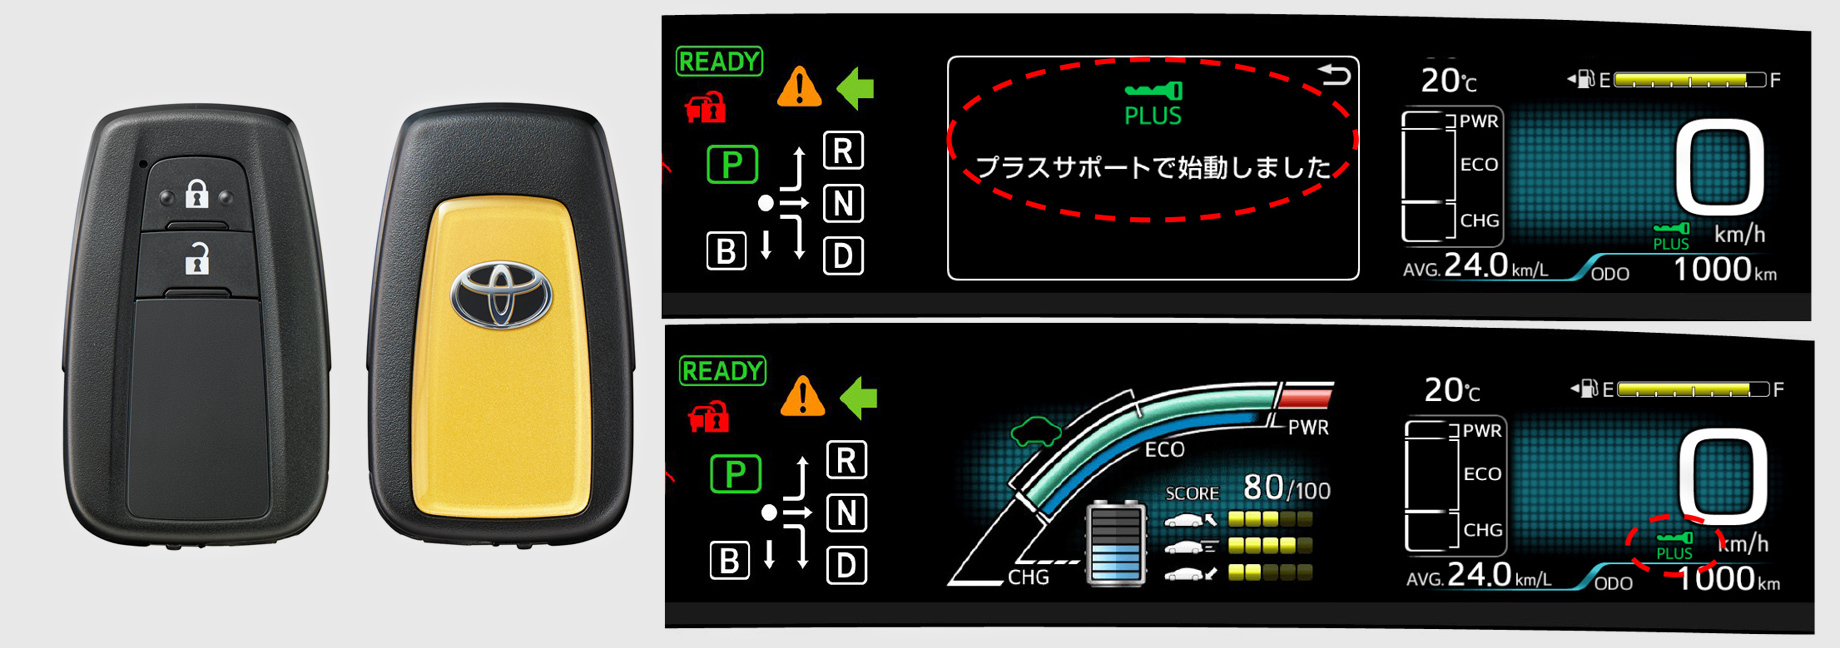 The new feature called Plus Support will be initially available for the Japan-spec Toyota Prius and will prevent the car from ramming into an obstacle when the driver clearly floors the gas pedal by accident. Later on, it will spread over across the range.